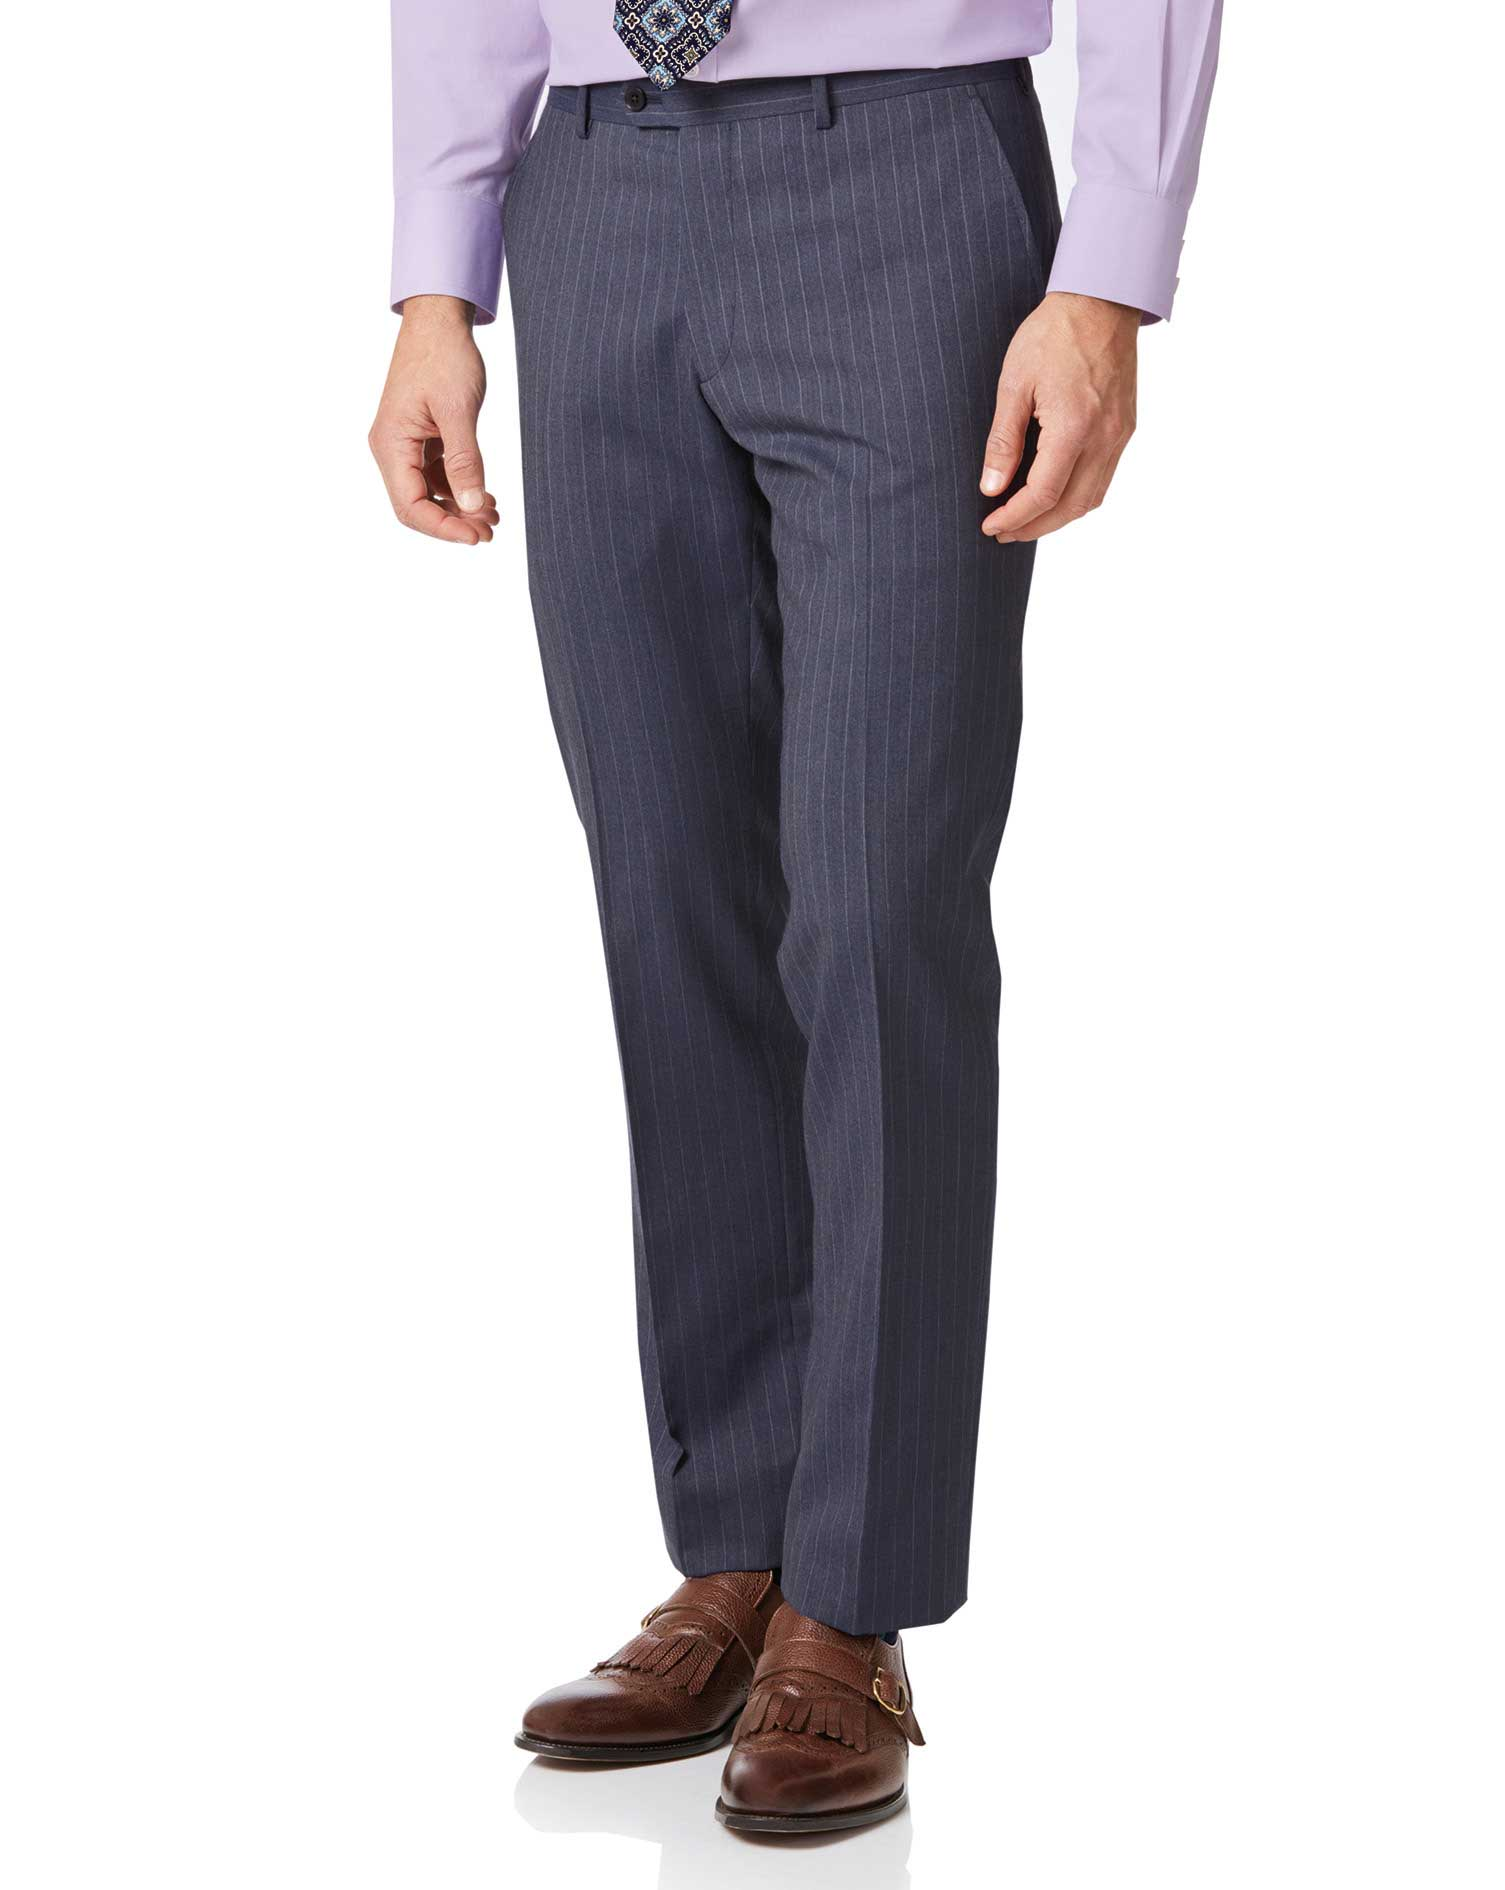 Airforce Stripe Classic Fit Panama Business Suit Trouser Size W42 L32 by Charles Tyrwhitt